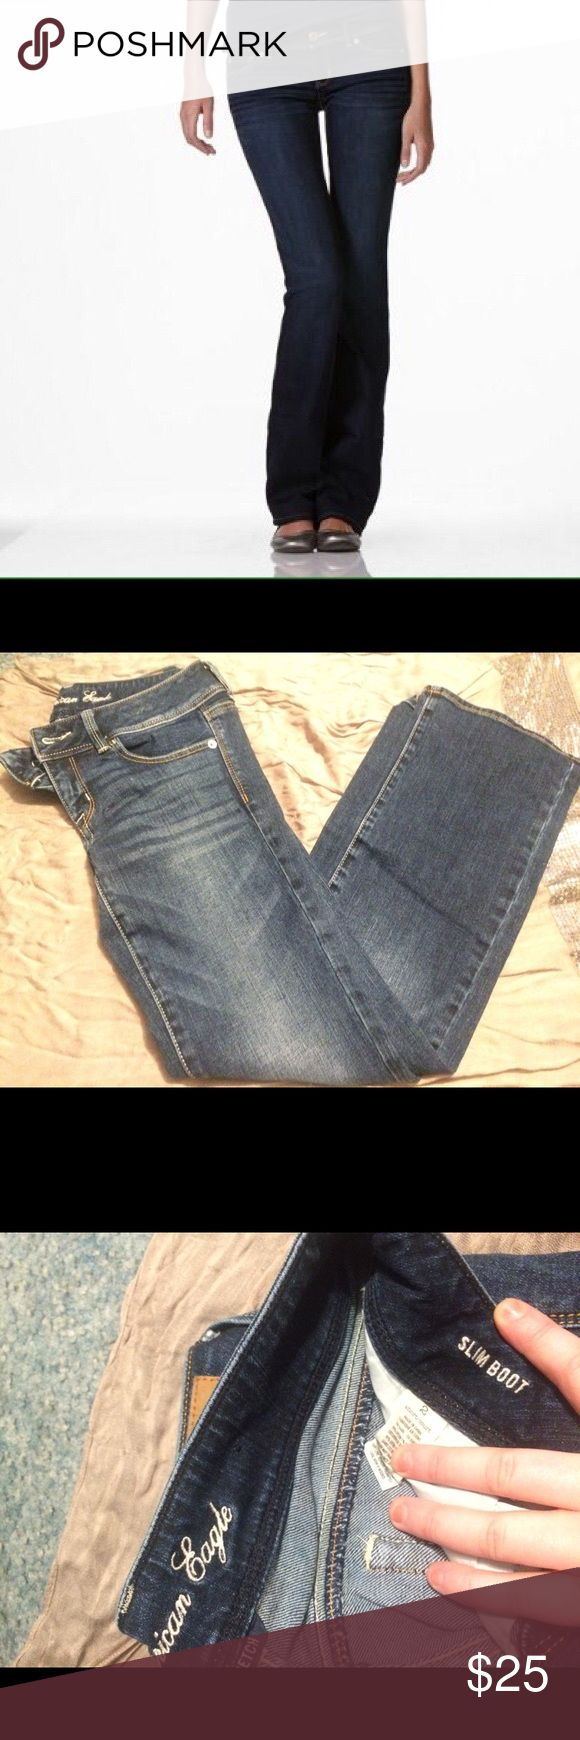 American Eagle Slim Boot Jeans Size 2 short.  No tags but only worn once for a couple hours! Brand new condition! They have a good amount of stretch to them and are a lower rise. Dark Wash American Eagle Outfitters Jeans Boot Cut